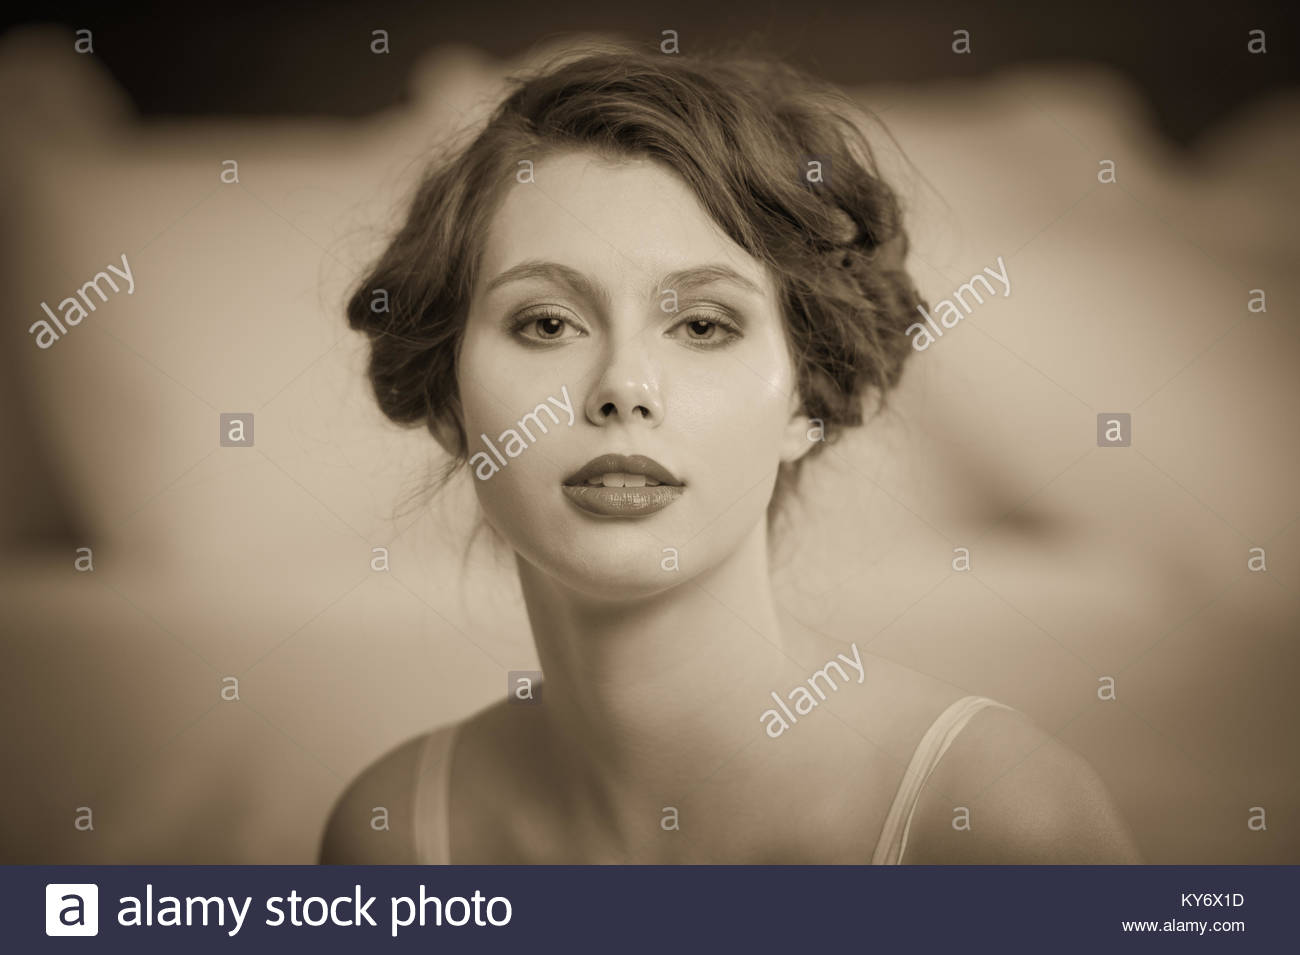 1920's style hair do on a woman facing the camera in sepia tone. - Stock Image